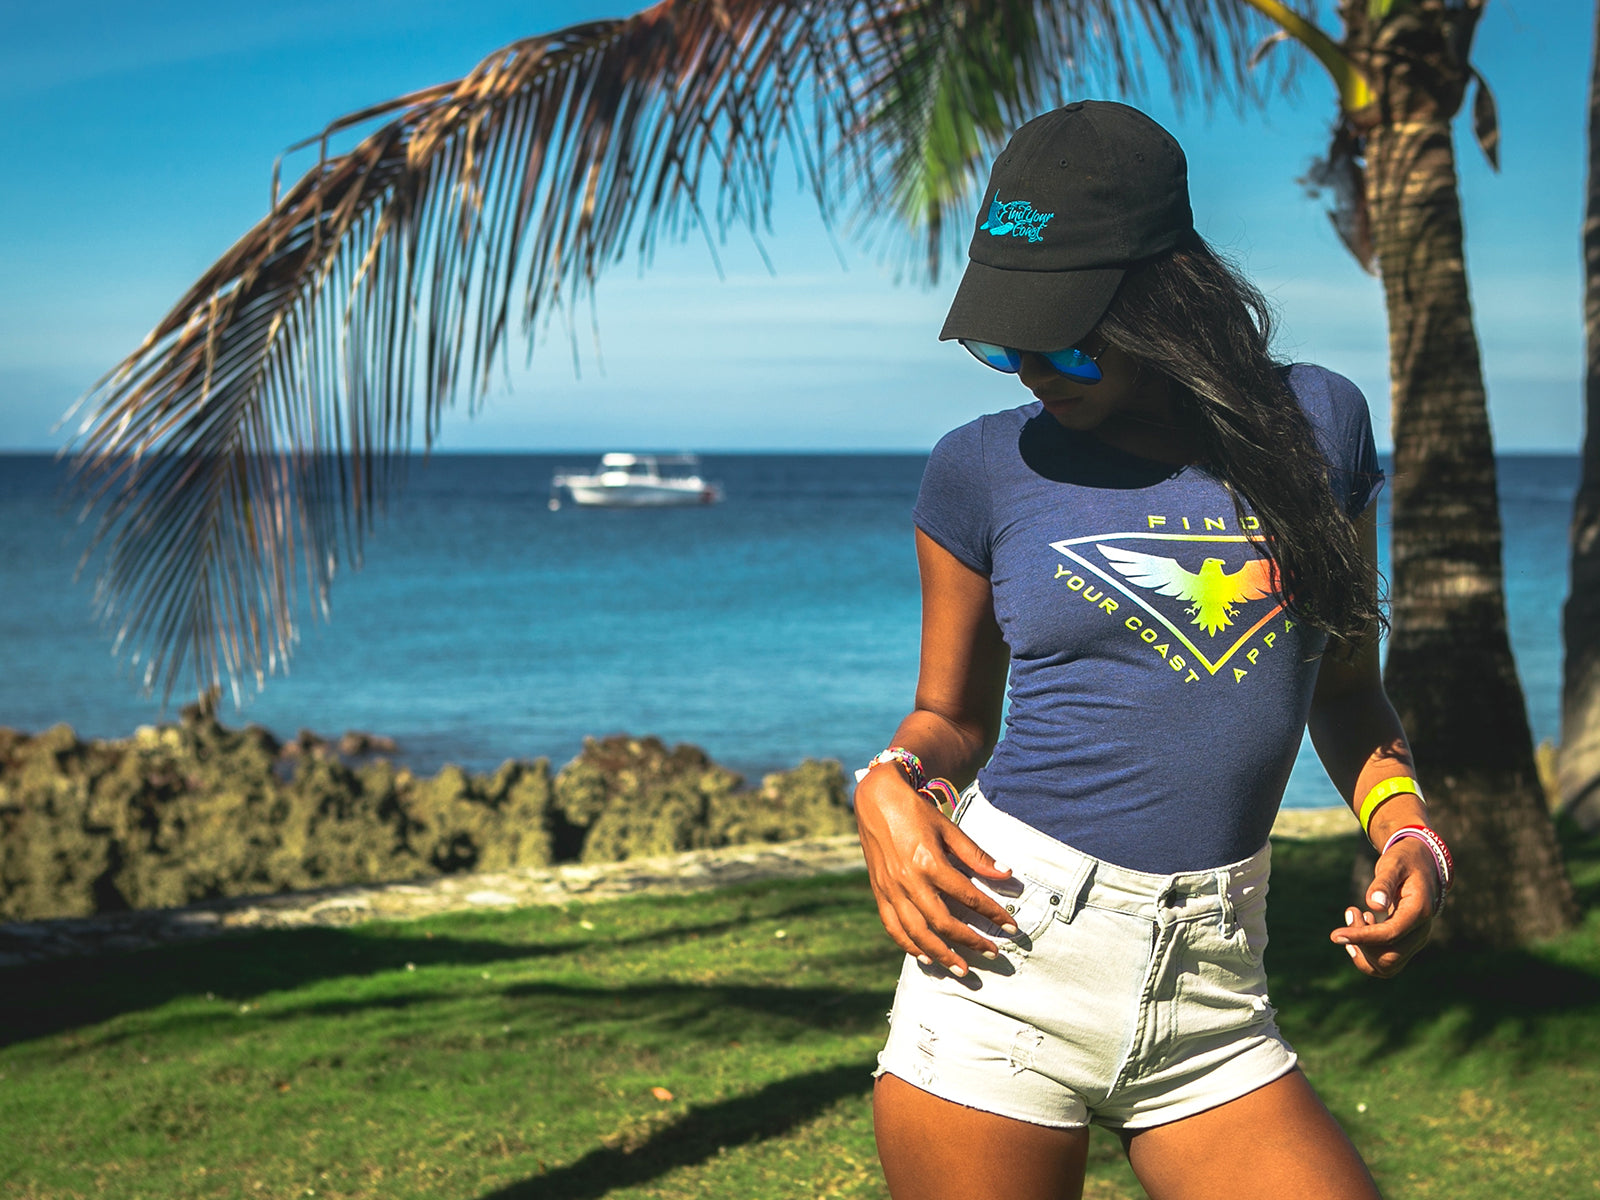 Find Your Coast Surf Beach Shirts